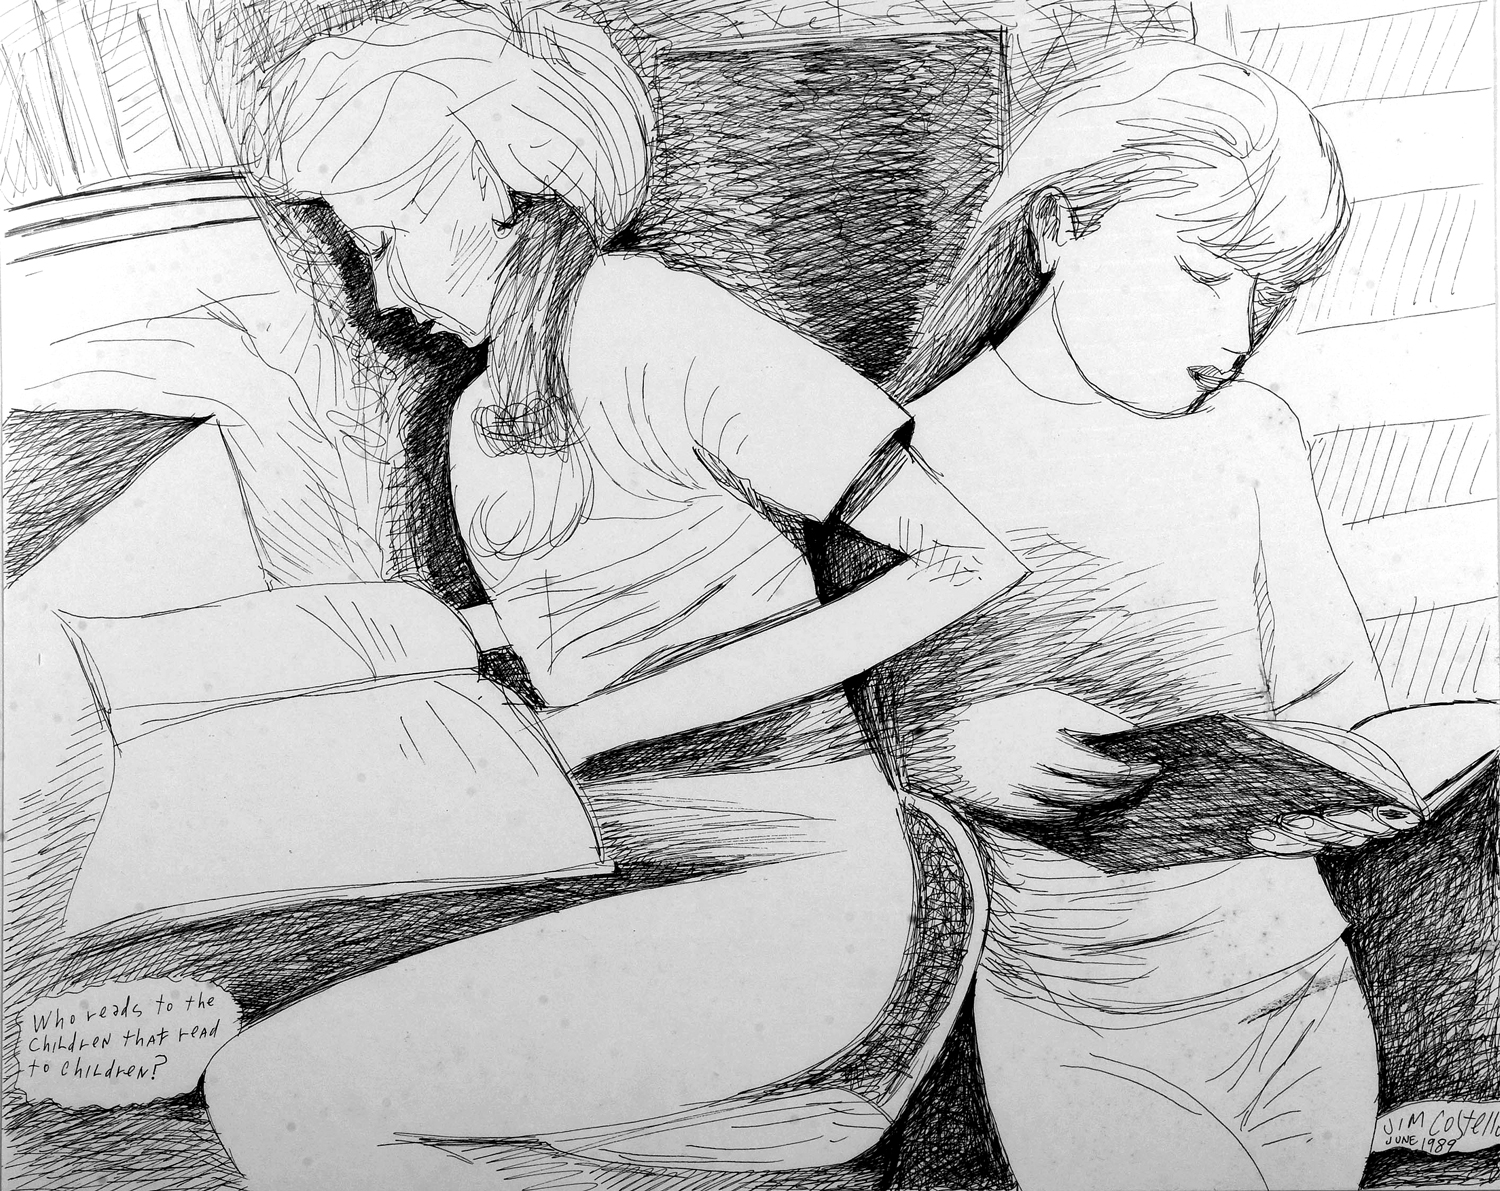 Jim Costello, Who Reads to the Children that Read to the Children, Pen & Ink, 1989